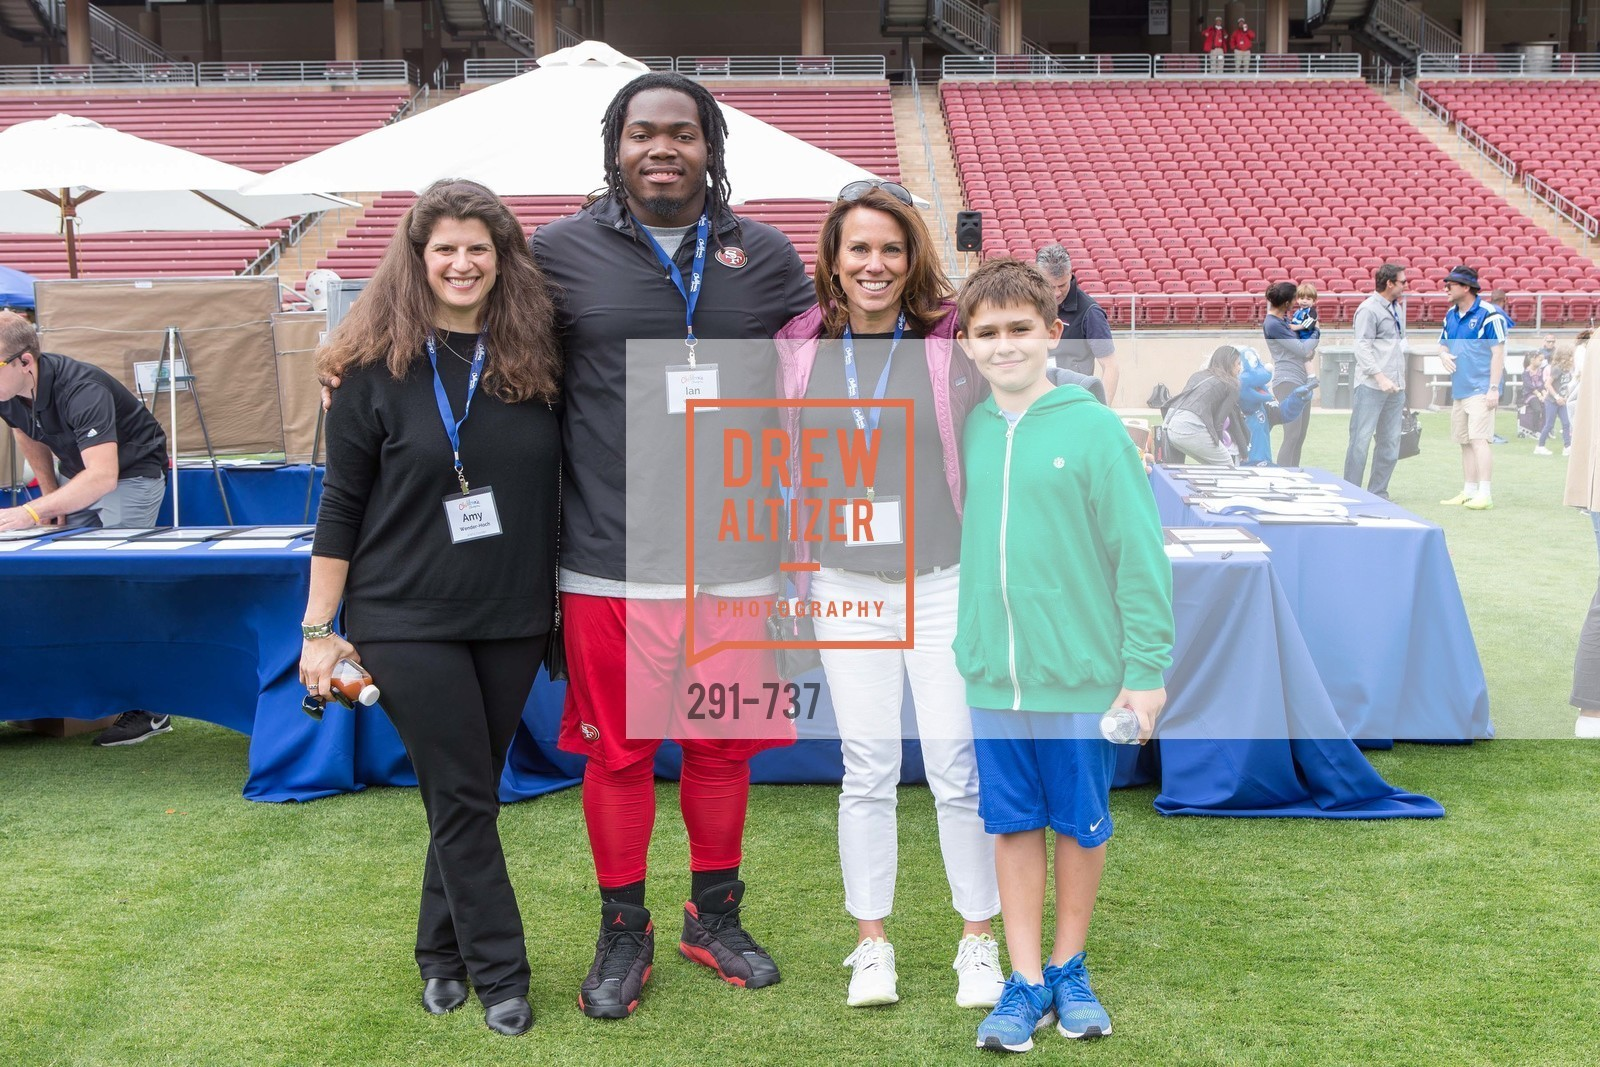 Amy Wender-Hoch, Ian Williams, Mindi Bach, Mitchell Bach, Children's Champions, US, May 17th, 2015,Drew Altizer, Drew Altizer Photography, full-service agency, private events, San Francisco photographer, photographer california